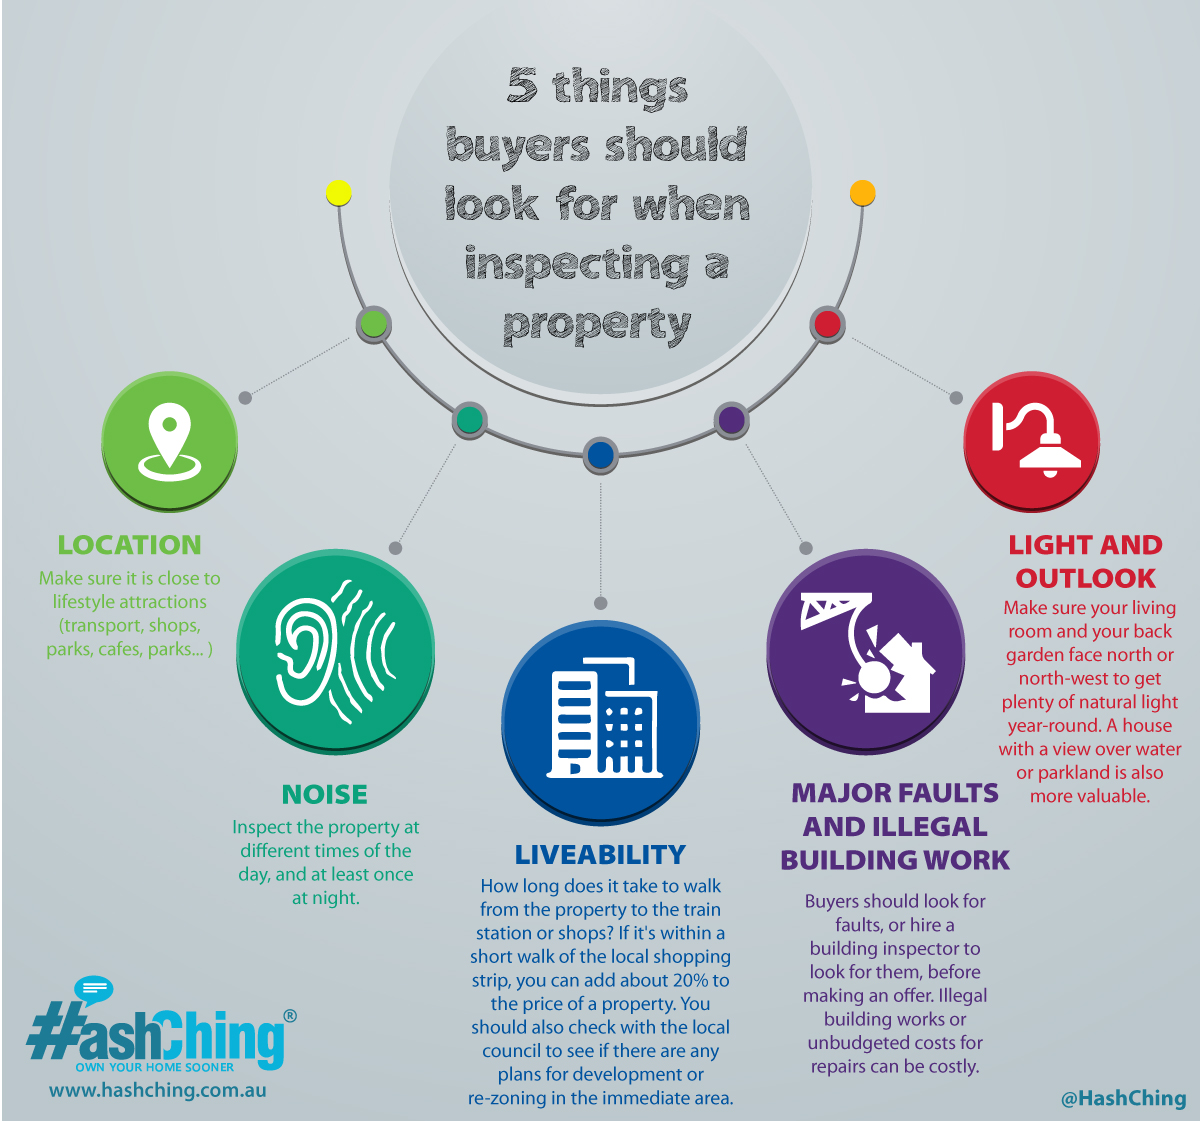 Five things buyers should look for when inspecting a property